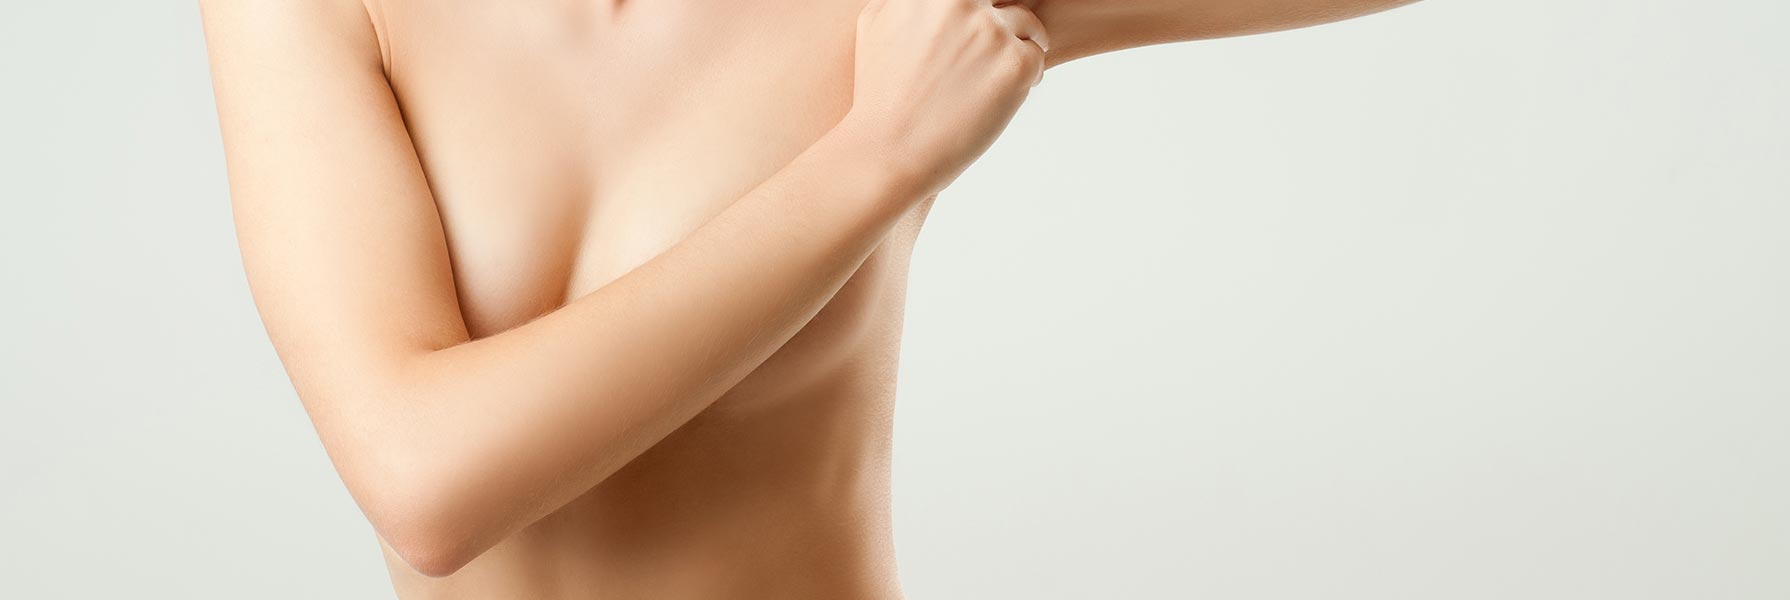 Tuberous breasts model 02, Form & Face clinic Sydney